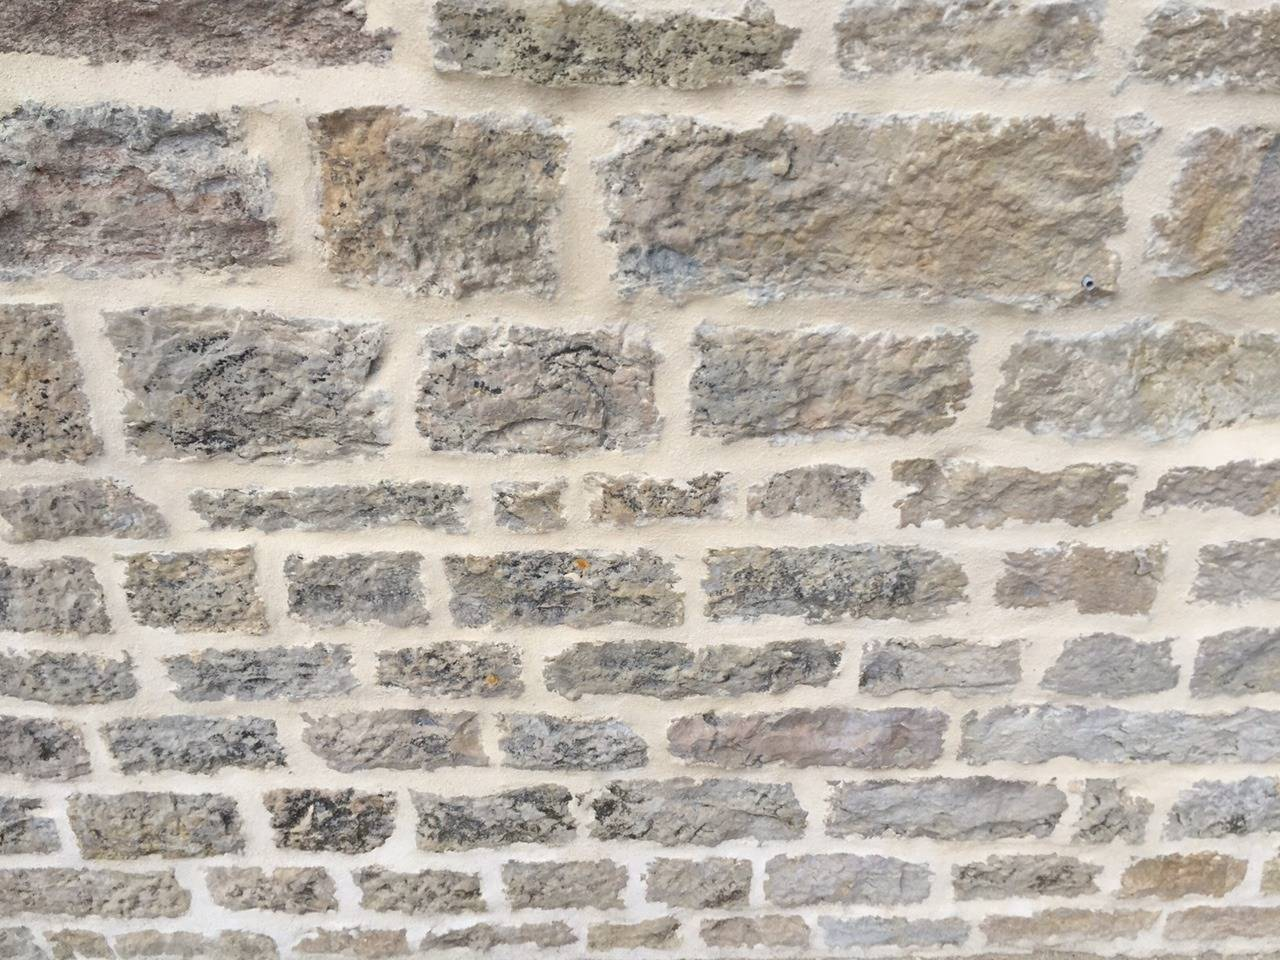 French Antique Limestone Wall Surround, 18th Century, France For Sale 2